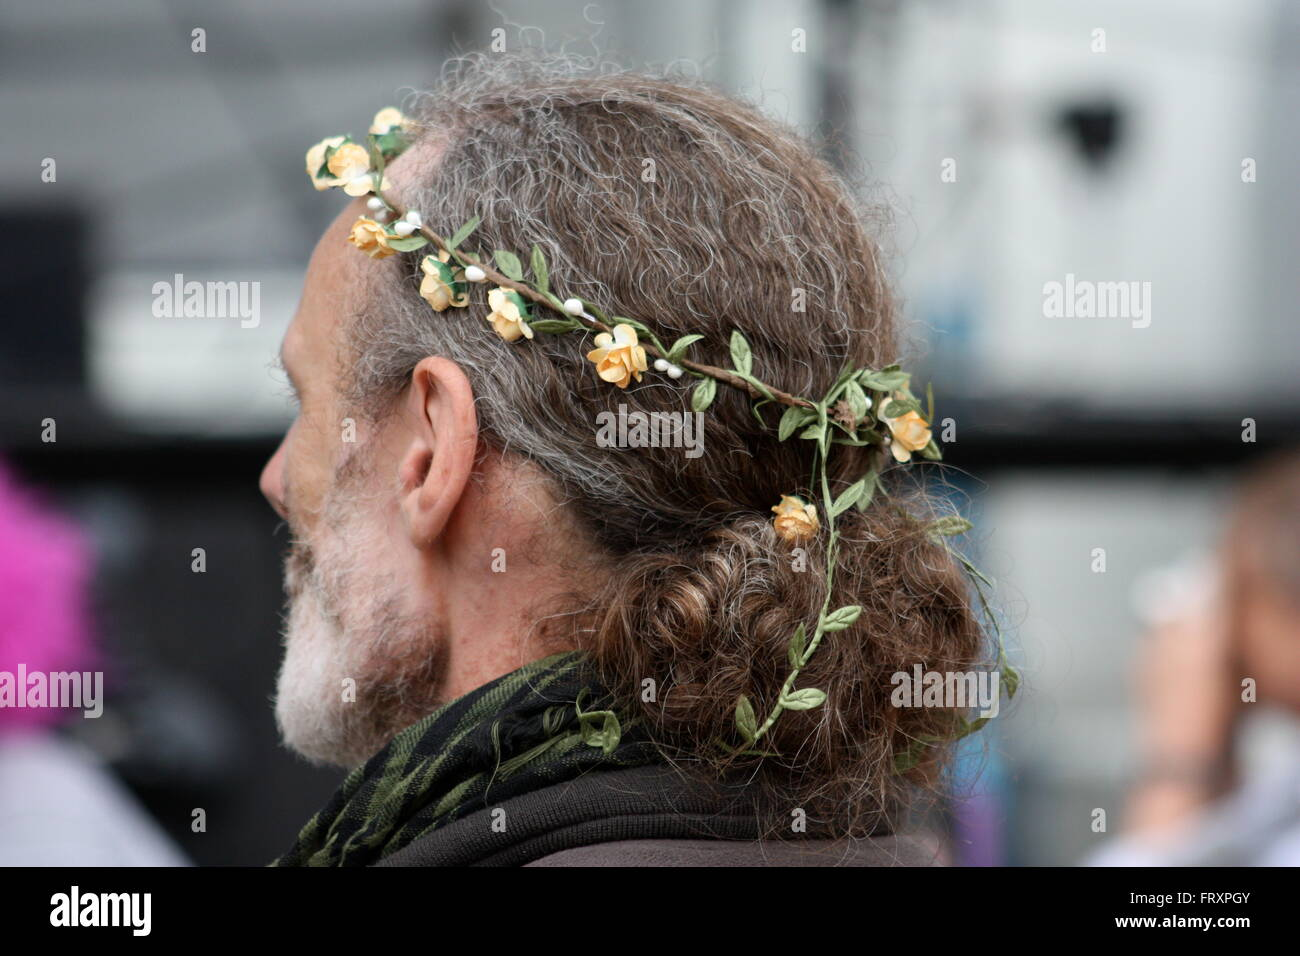 With flowers in your hair ... Fairport Cropredy Convention - Stock Image